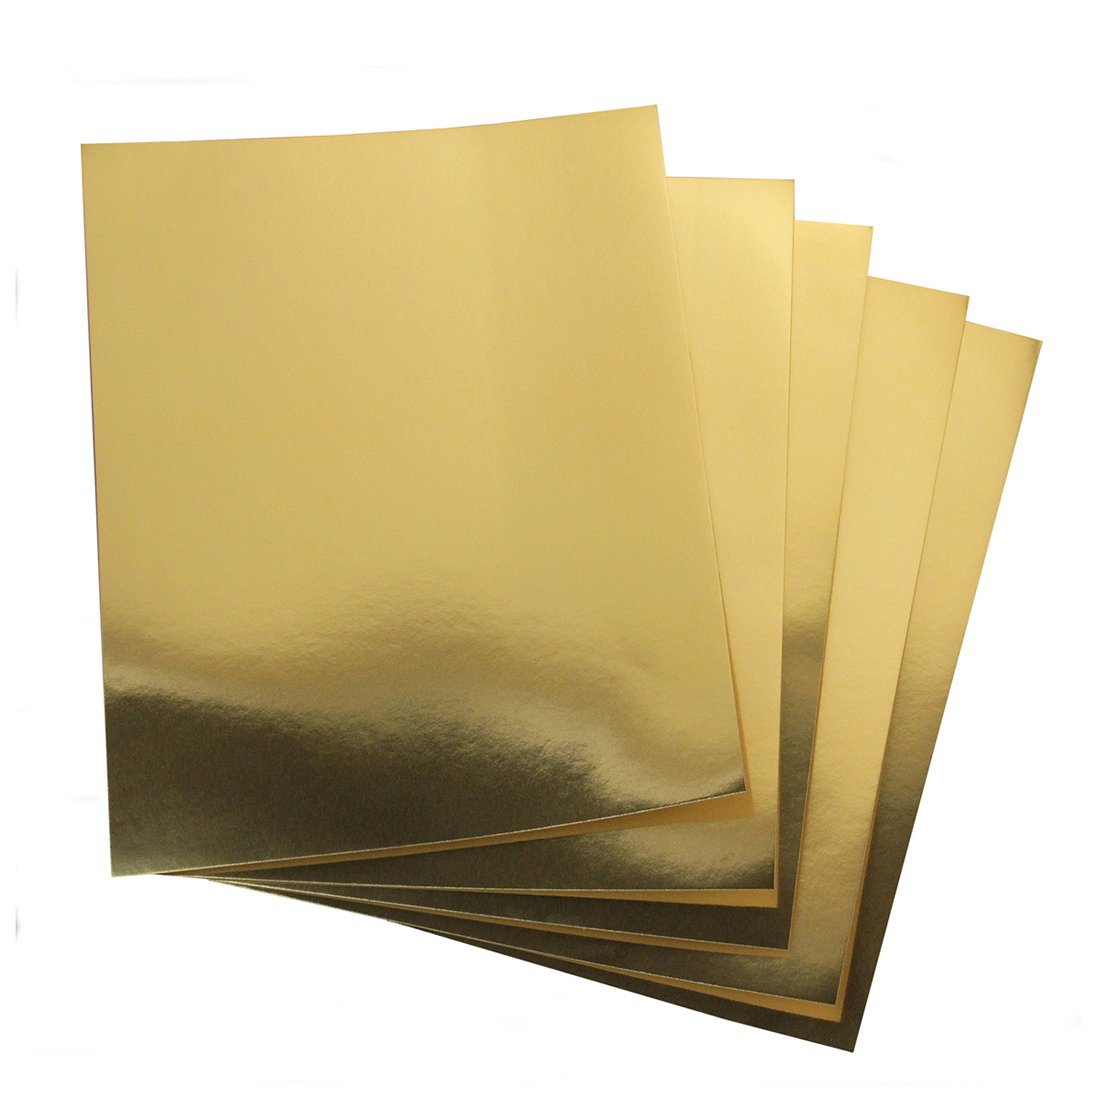 Hygloss Products Metallic Foil Board Sheets-8.5 x 11 Inches - Gold, 100 Pack by Hygloss